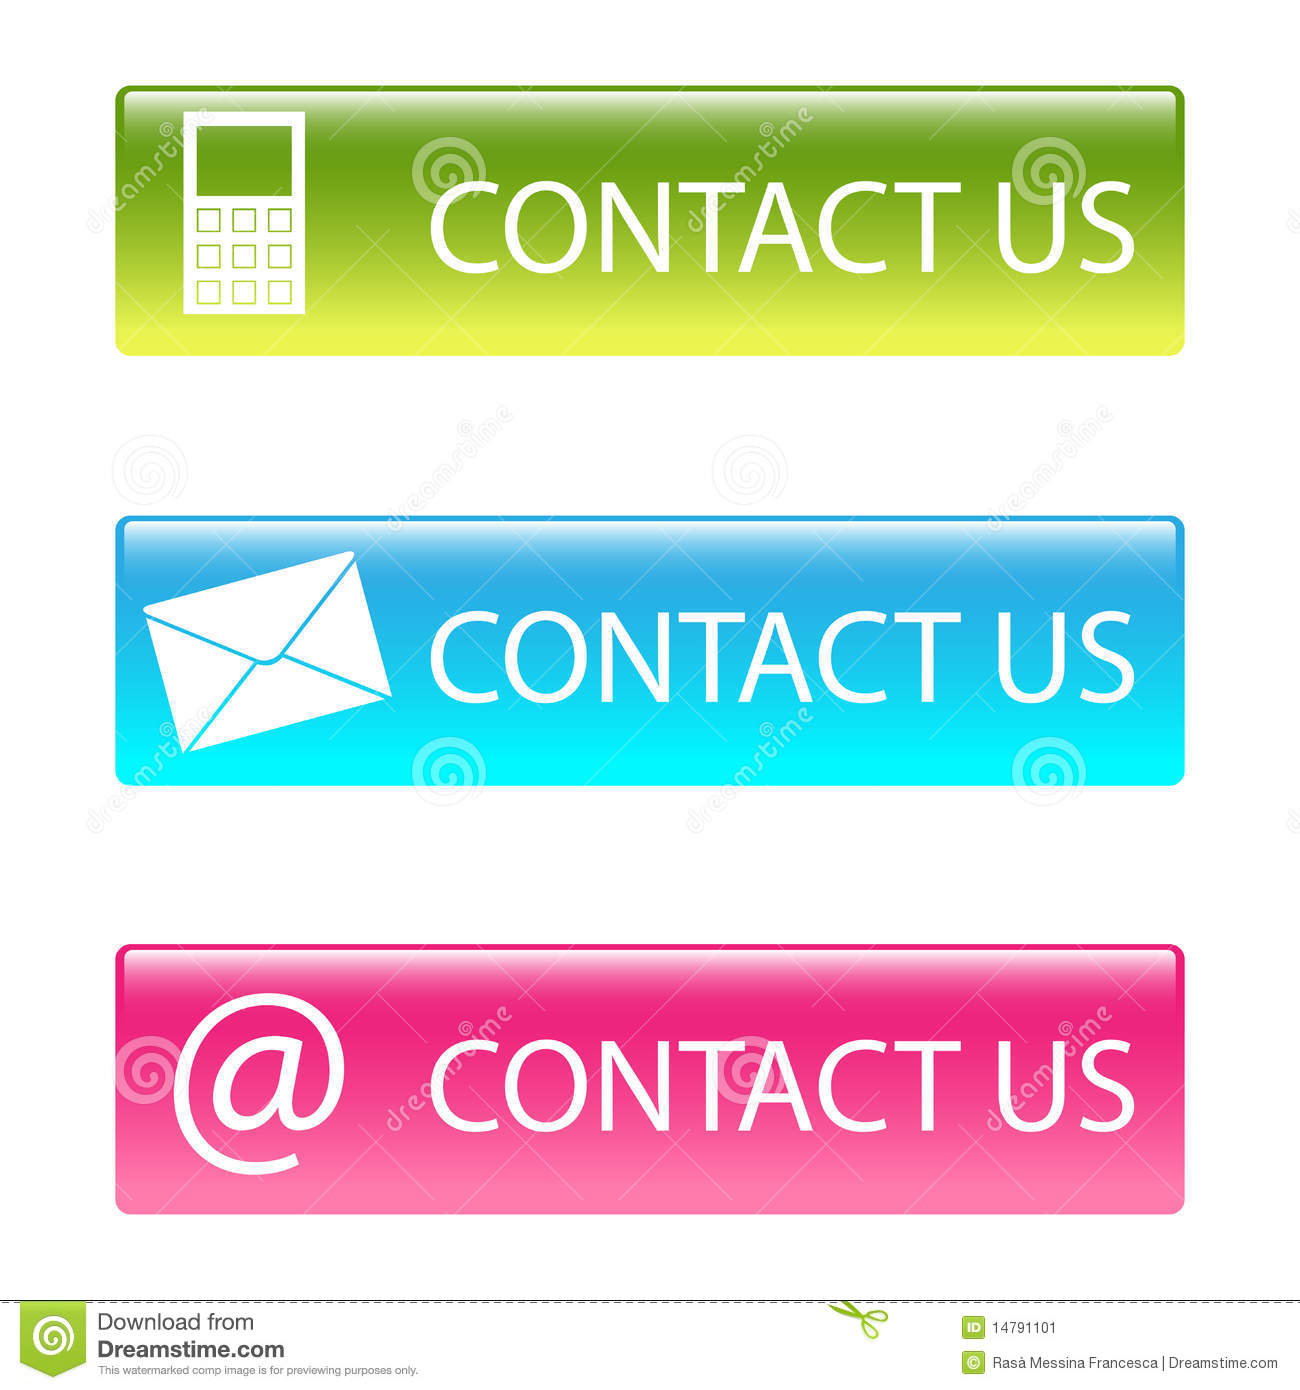 Contact Us: Contact Us Buttons Stock Image